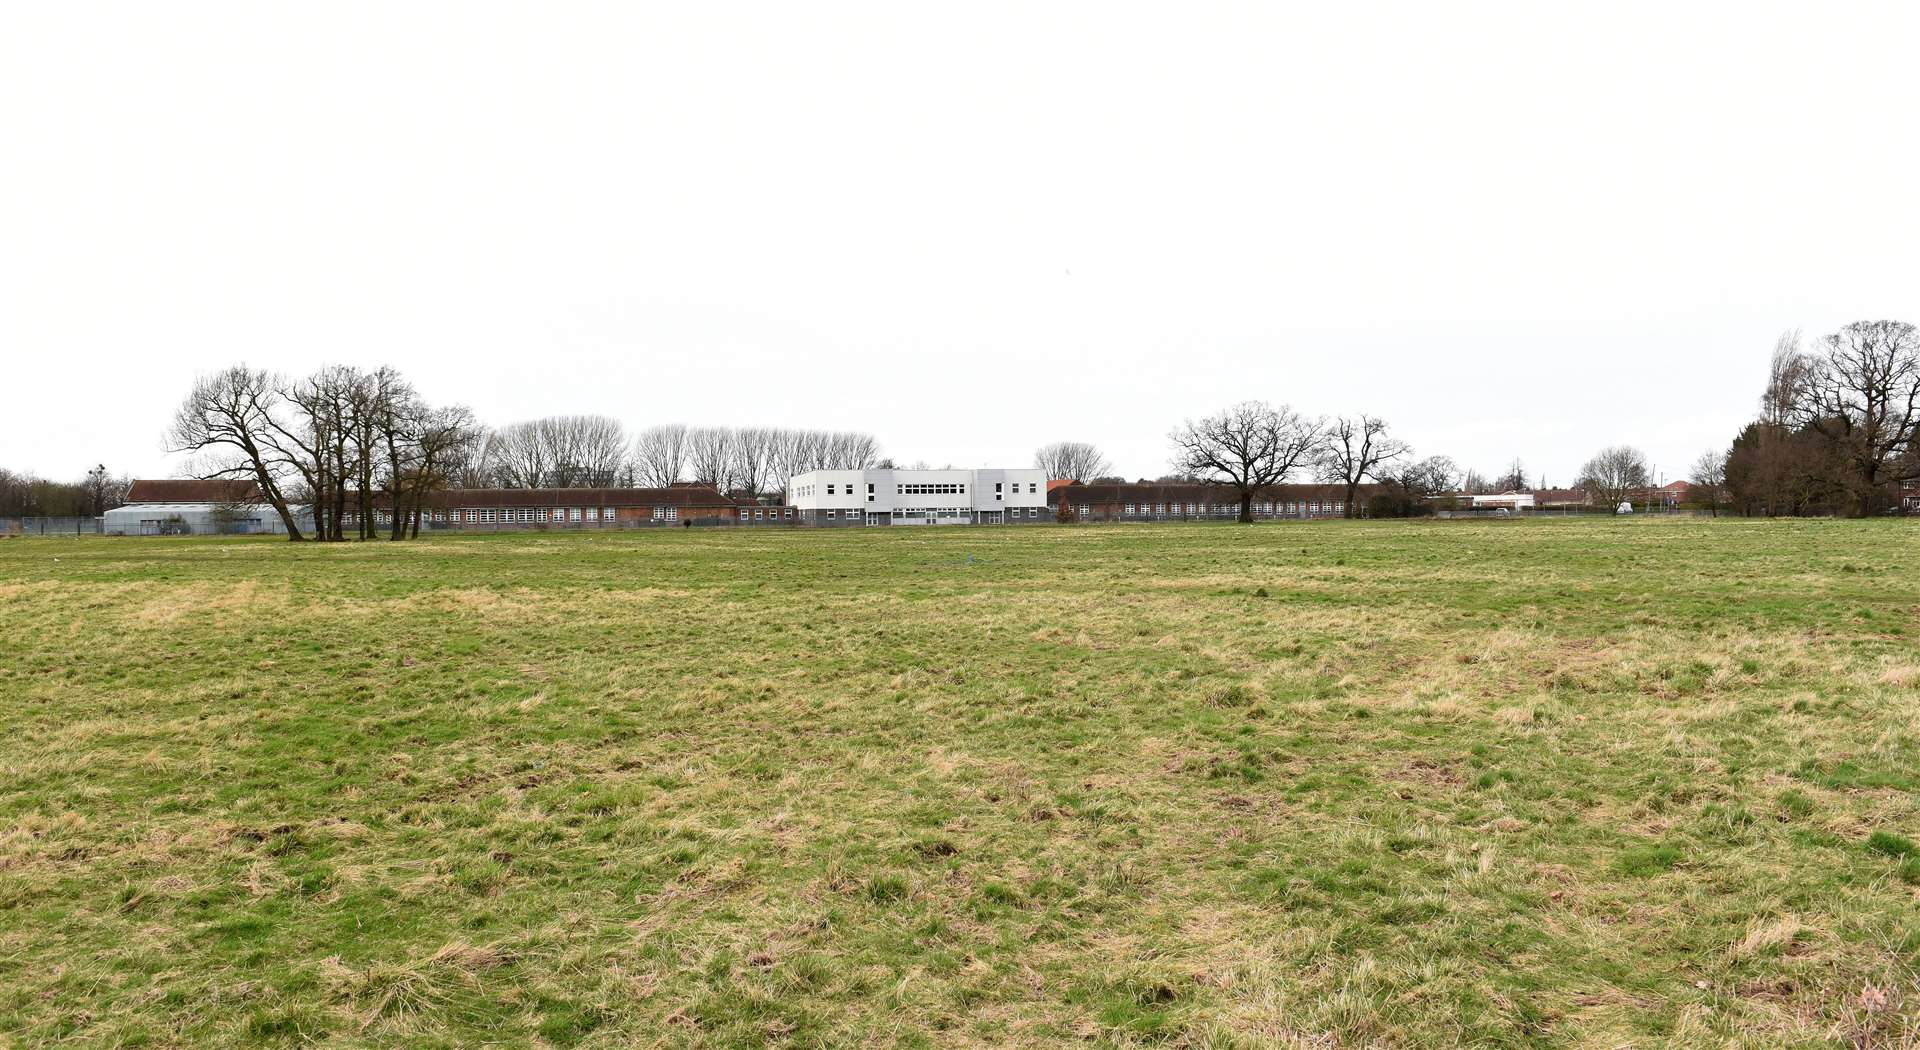 GV Picture of Land which is being Proposed for Possible New Housing Development for the Gaywood Area...Land next to the King's Lynn Academy Site off Queen Mary Road/Parkway Gaywood. (49550577)